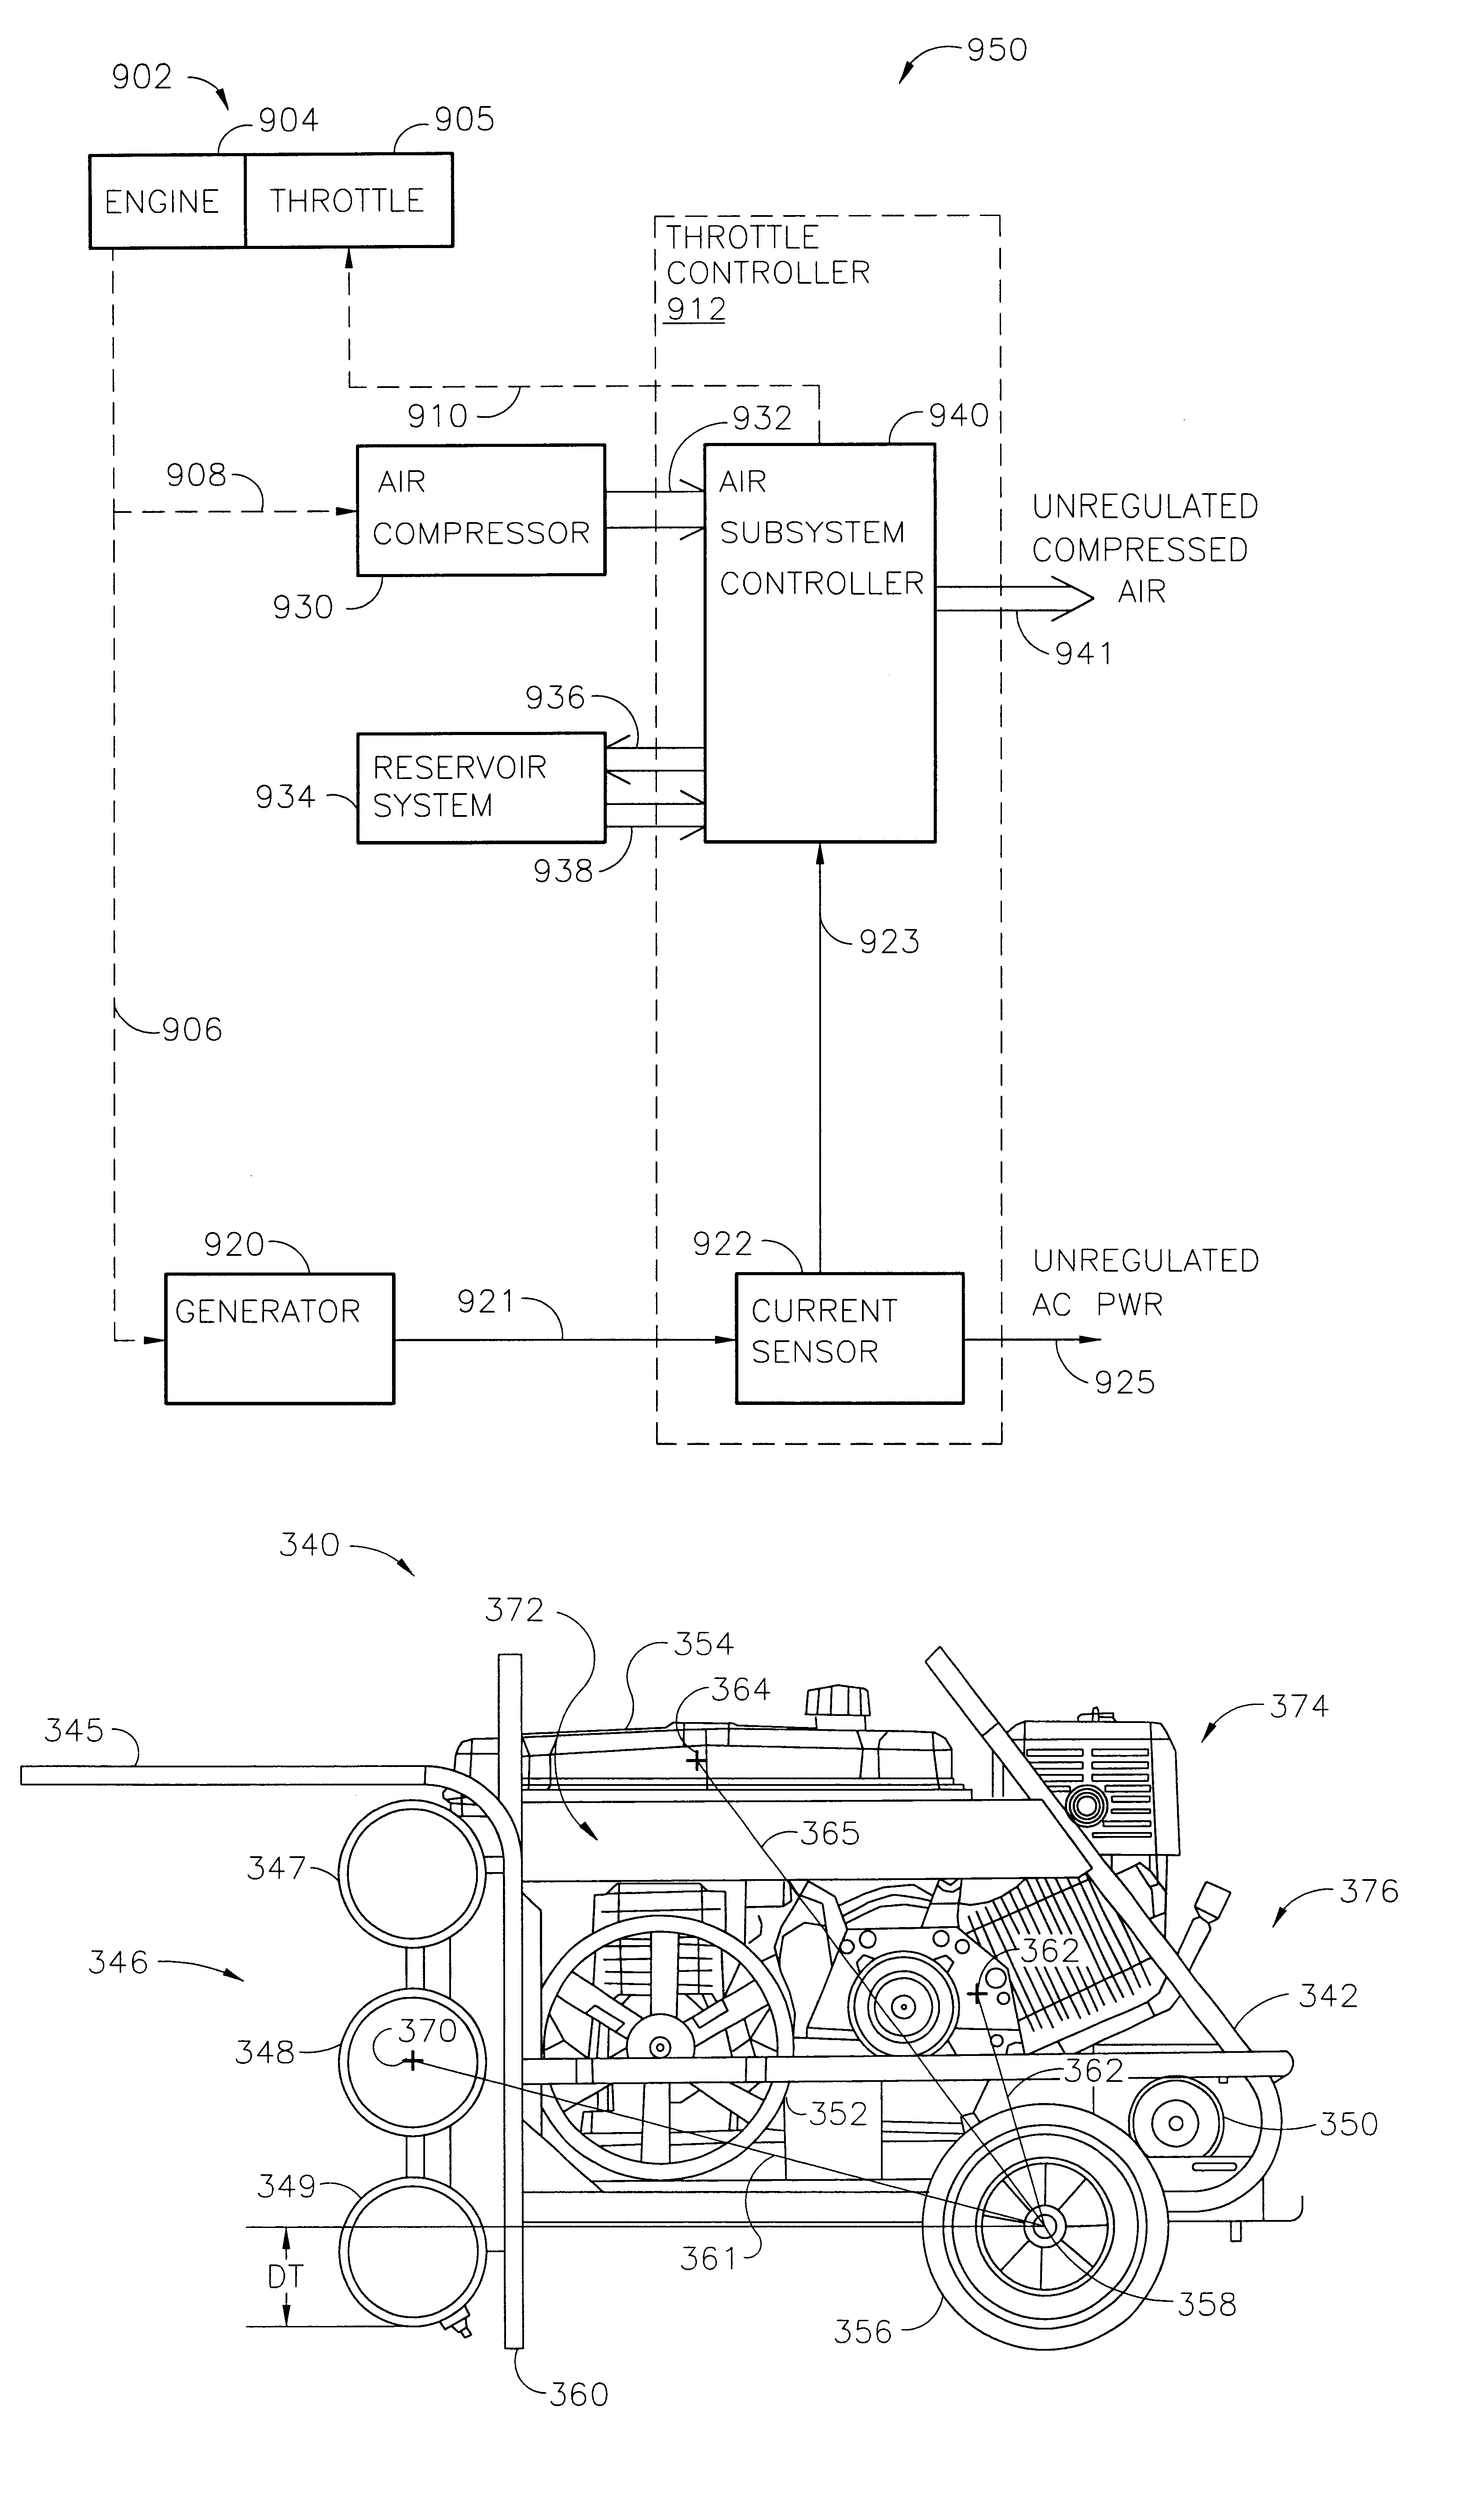 Patent Us6534958 System That Supplies Electrical Power And Overvoltage Protected Compressor Control Drawing